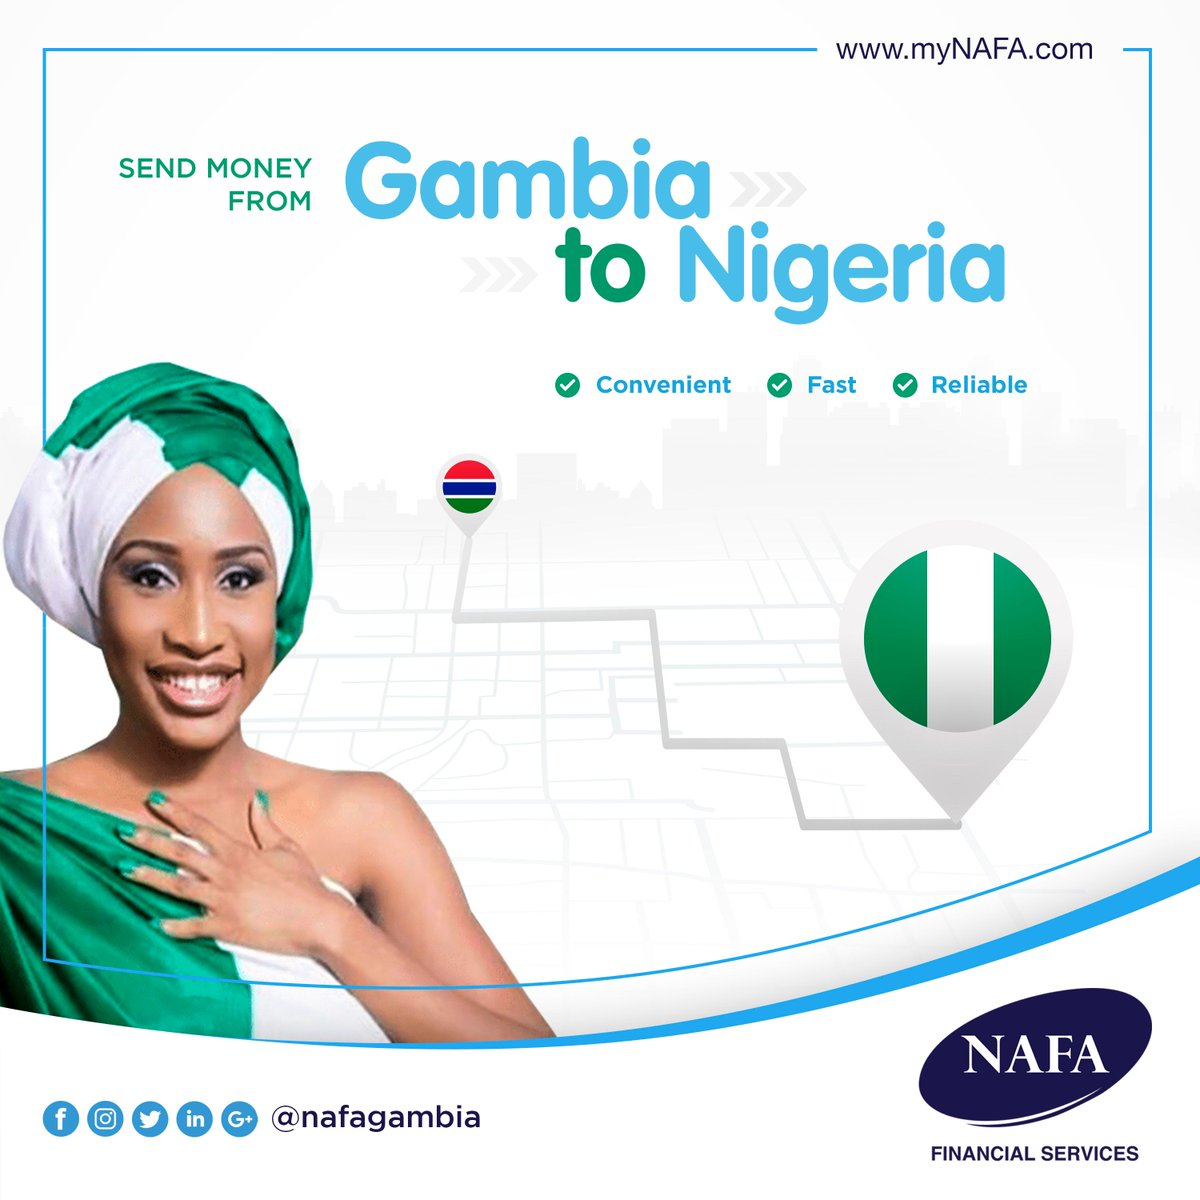 Way To Send Money From Gambia Nigeria With Zero Hle Contact Nafa Financial Services 2207762666 Great Rates Exceptional Service